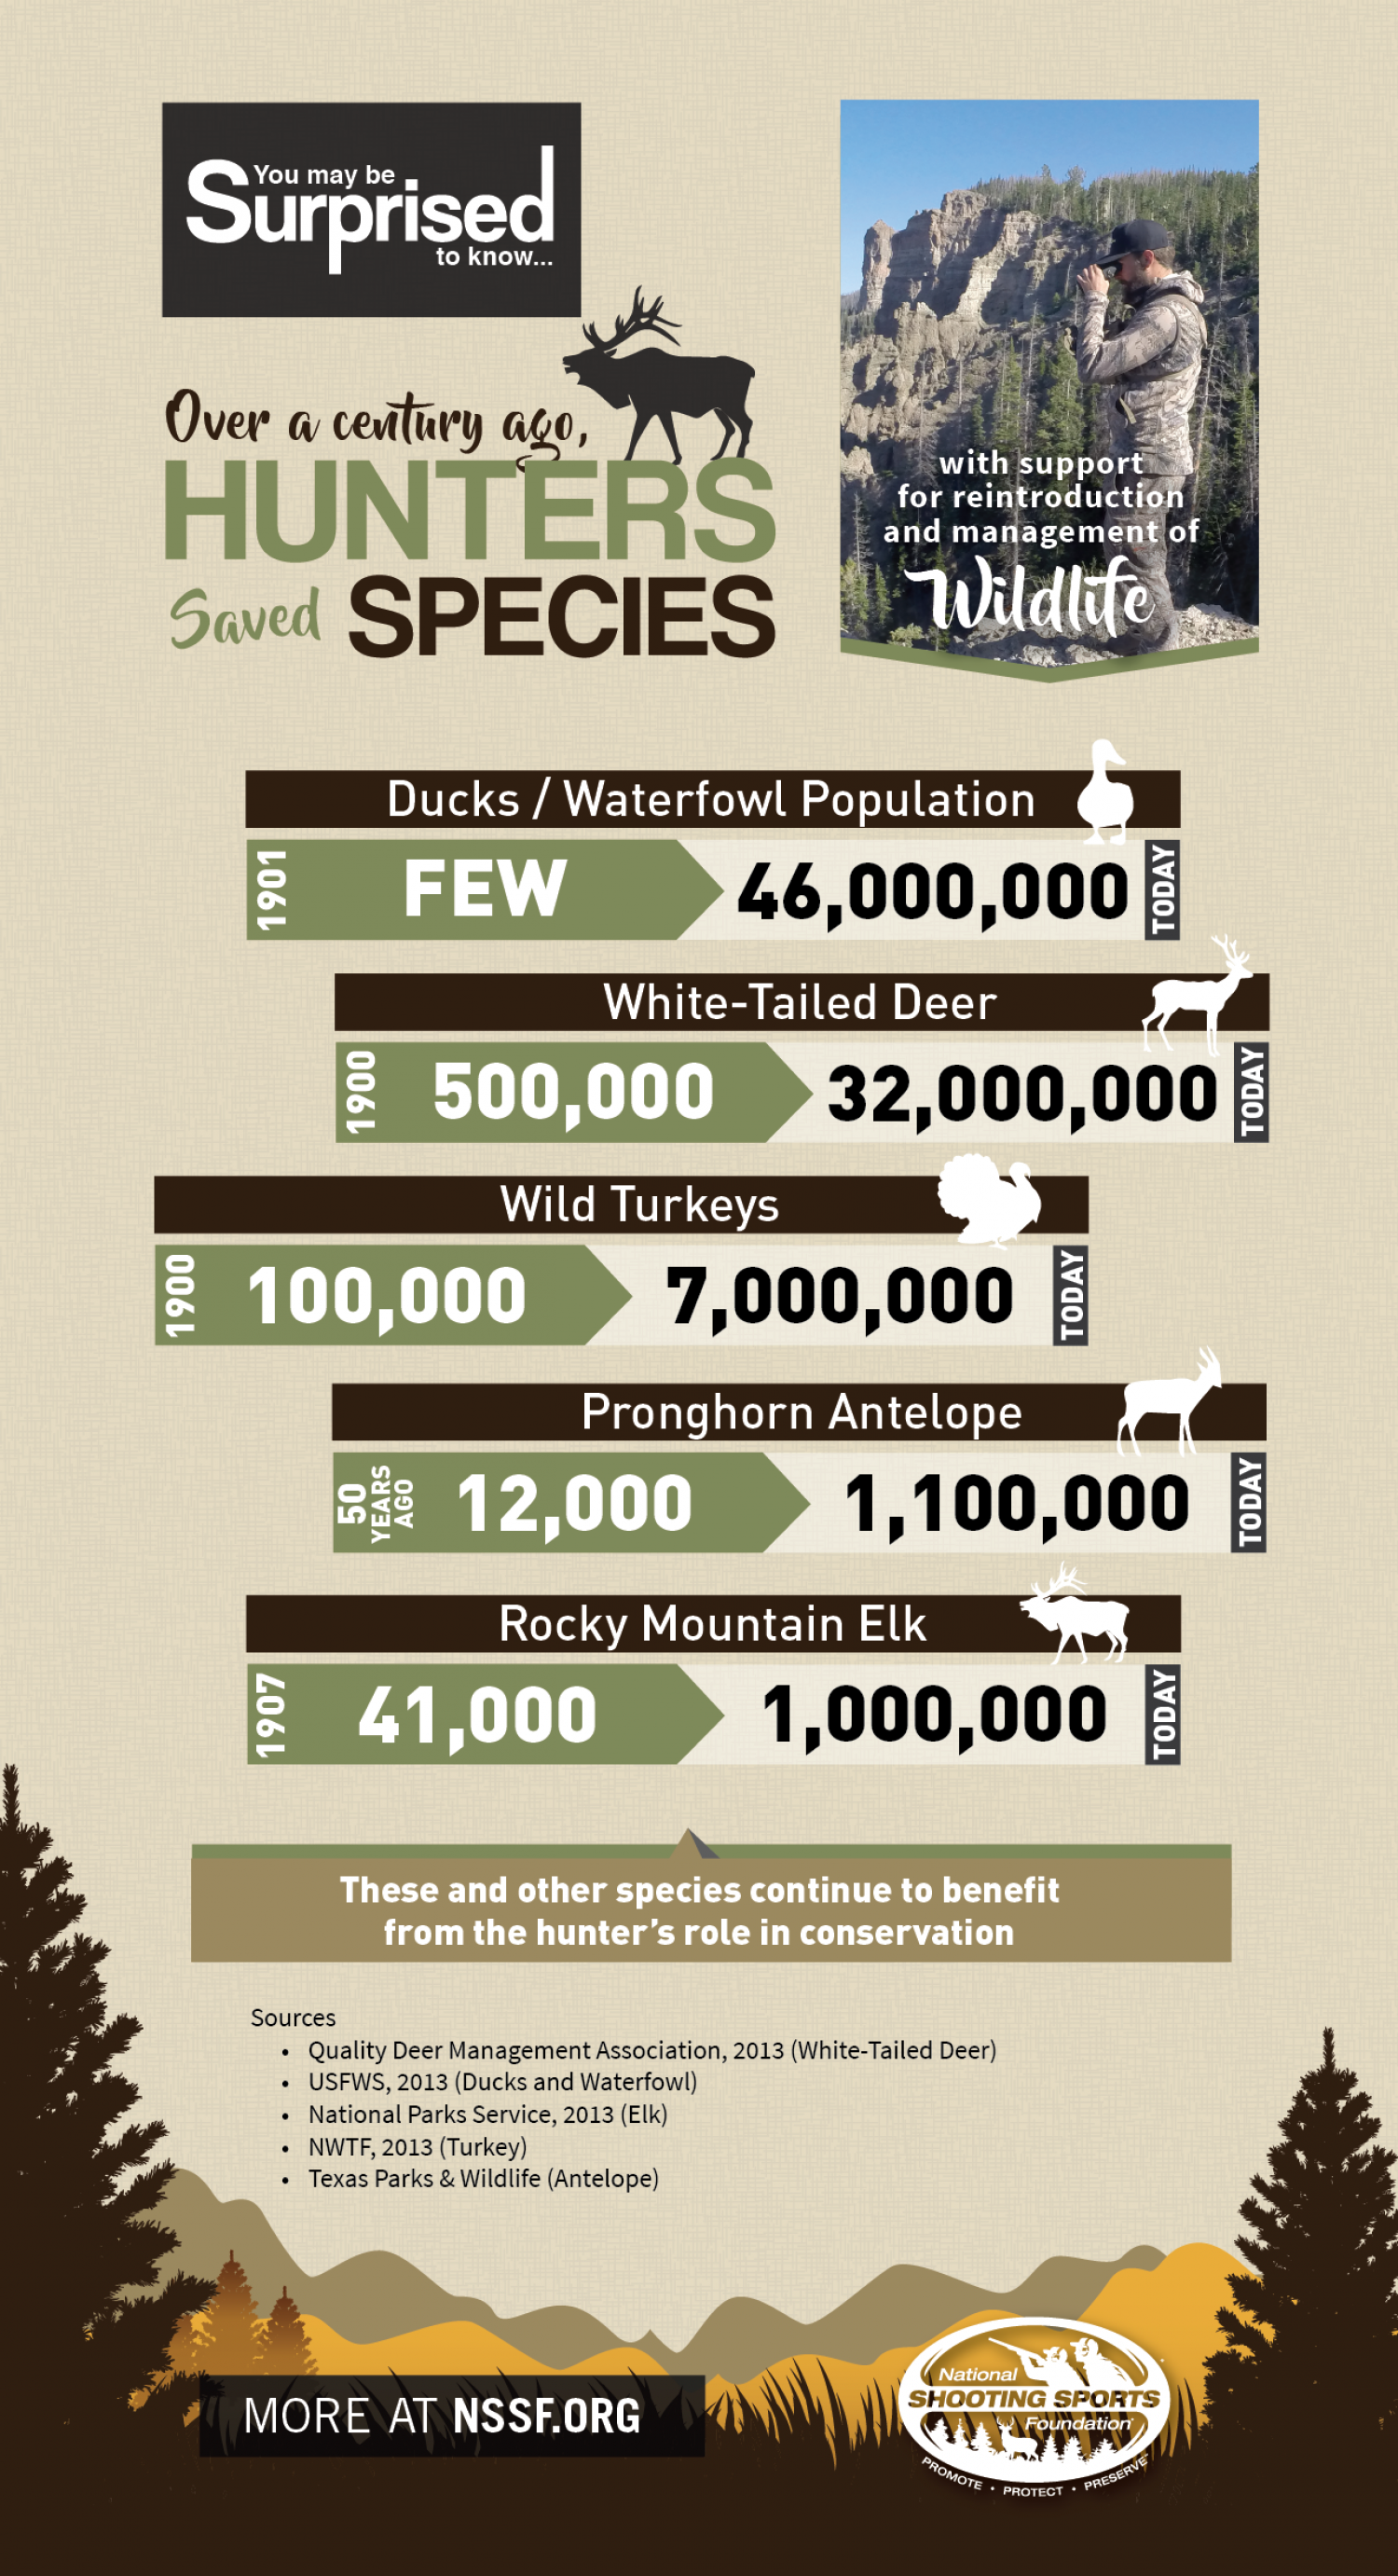 hunters saved the species infographic